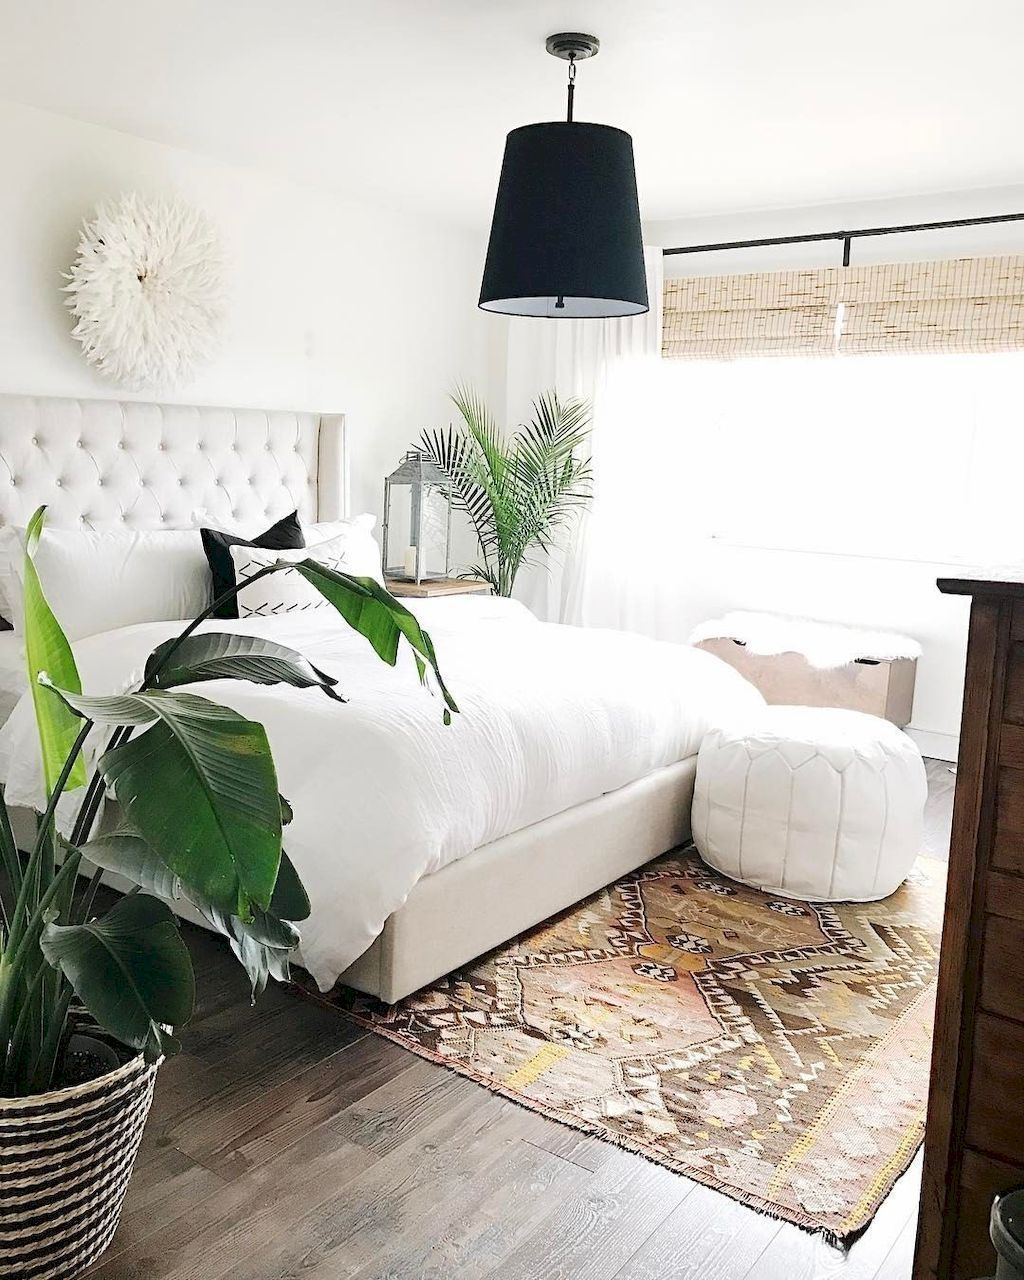 Best Home Ideas and Inspiration